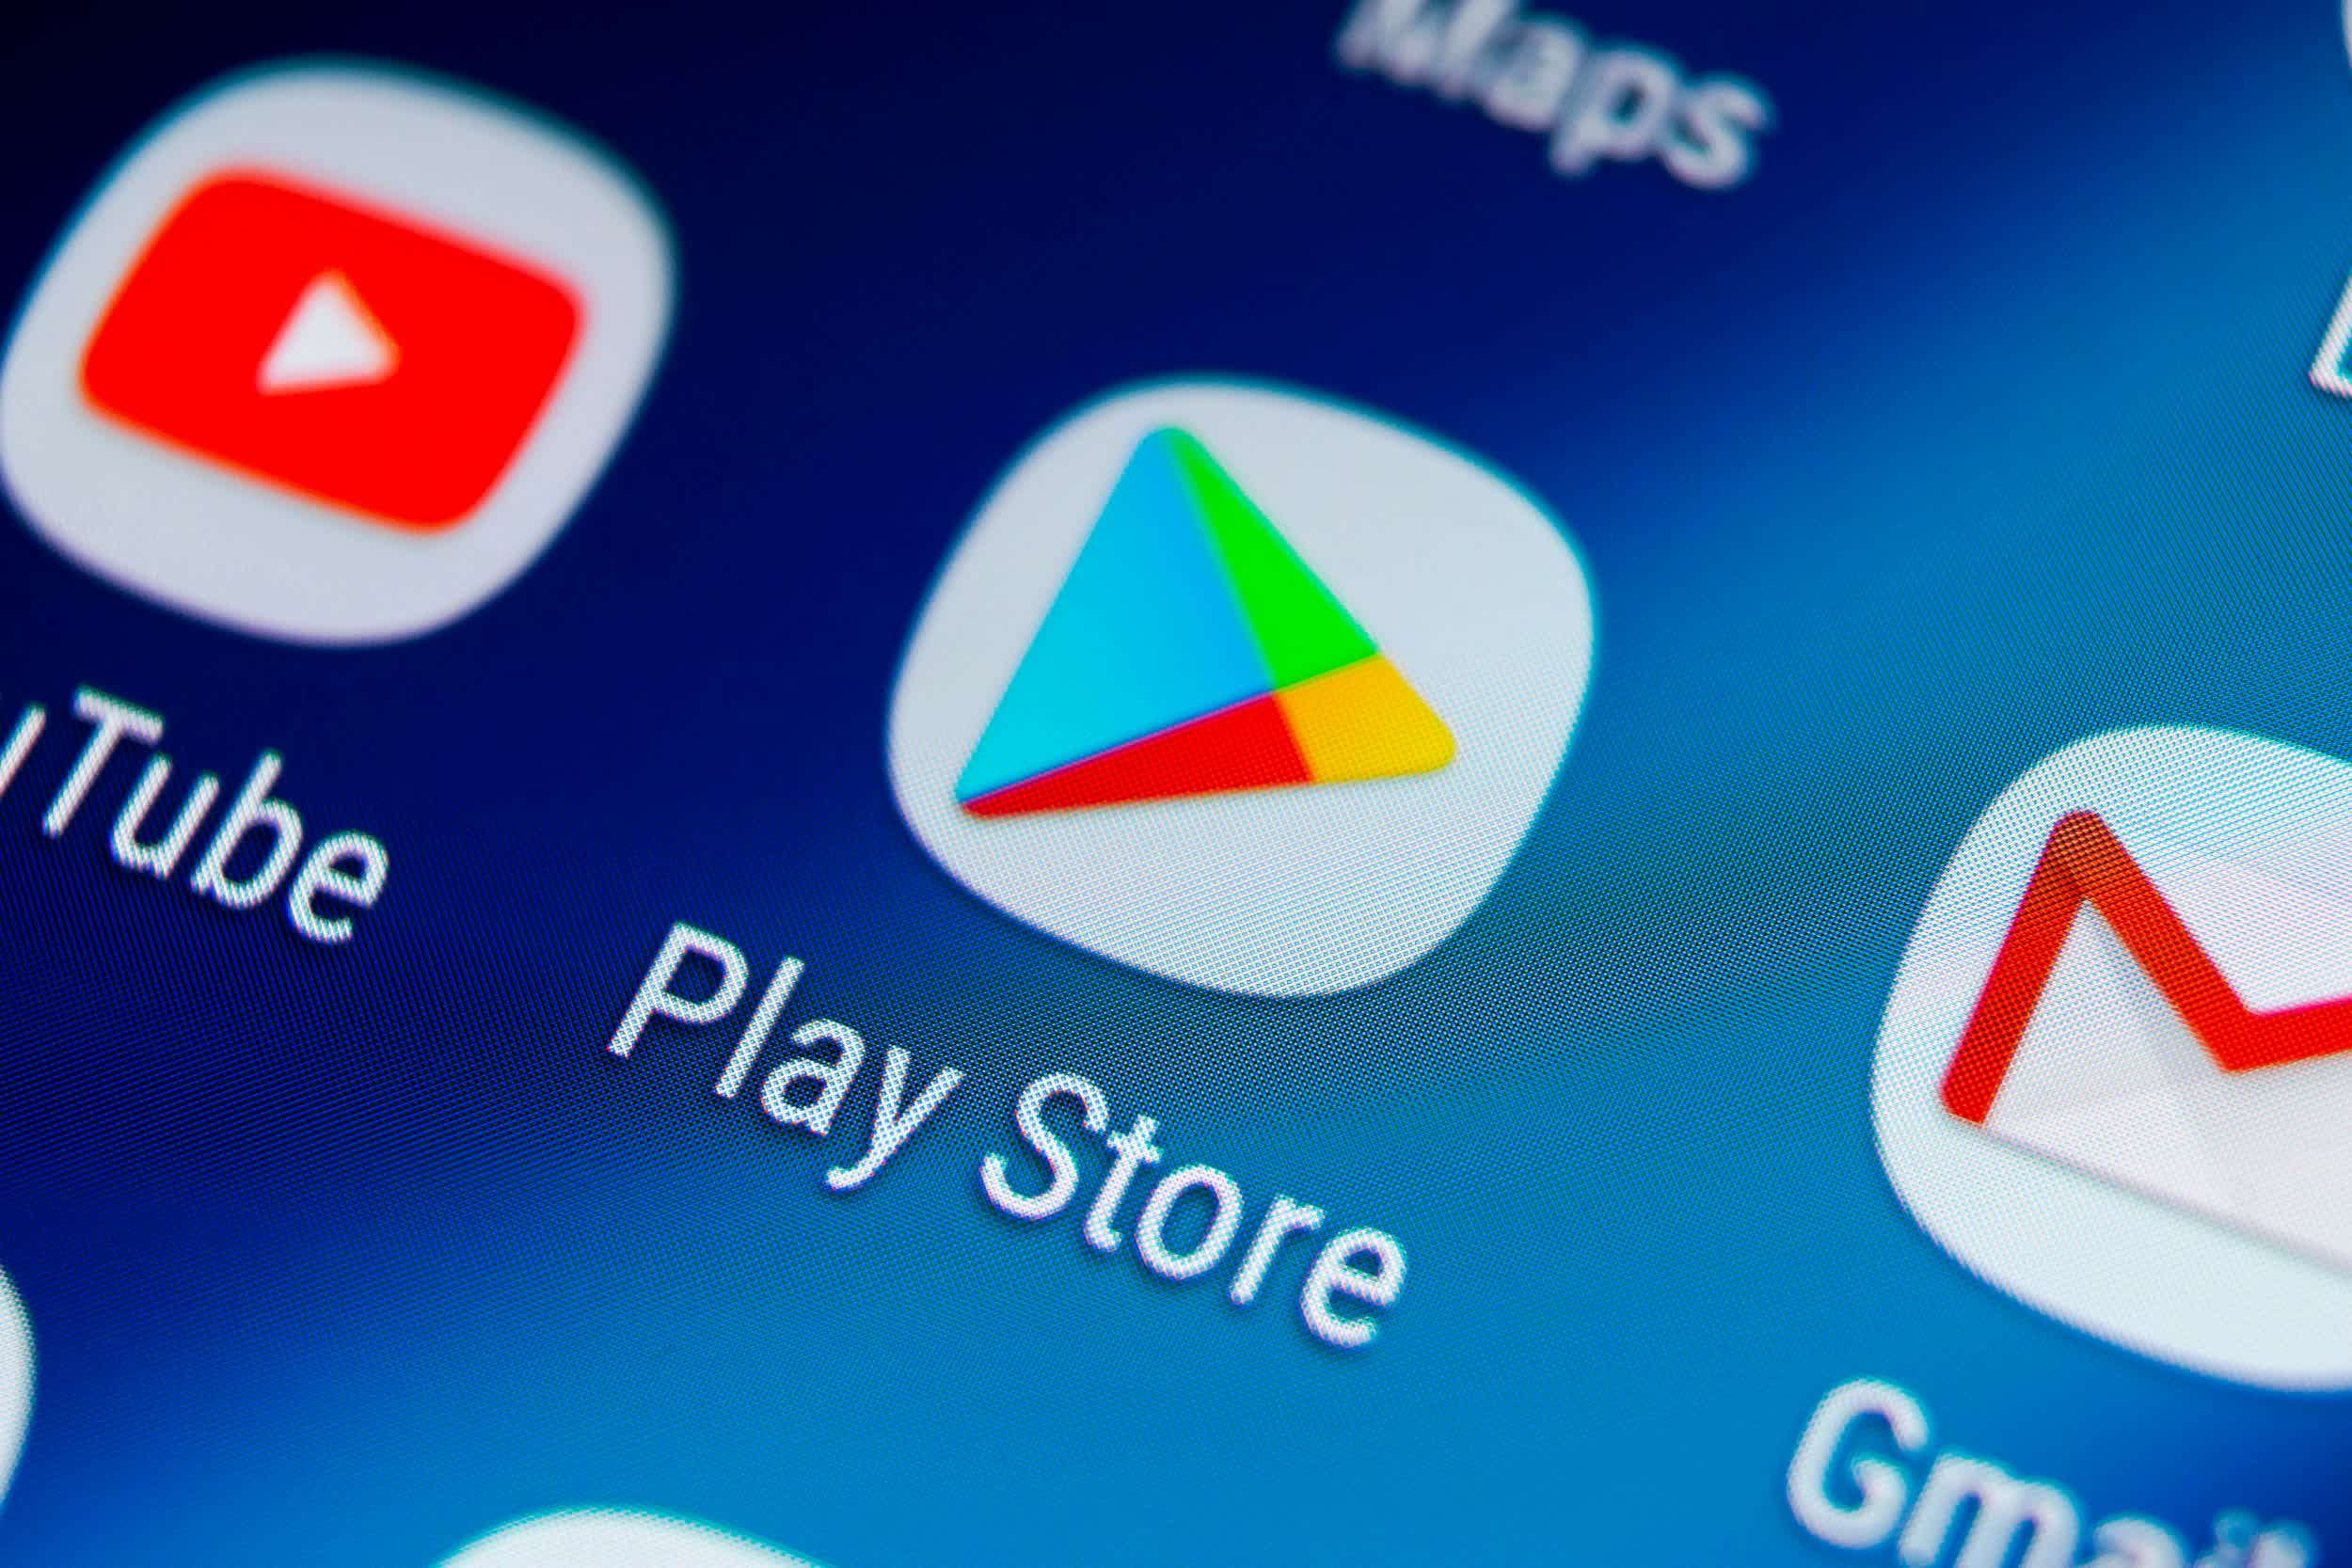 Google to slash Play Store commissions in half for developers' first $1M in sales